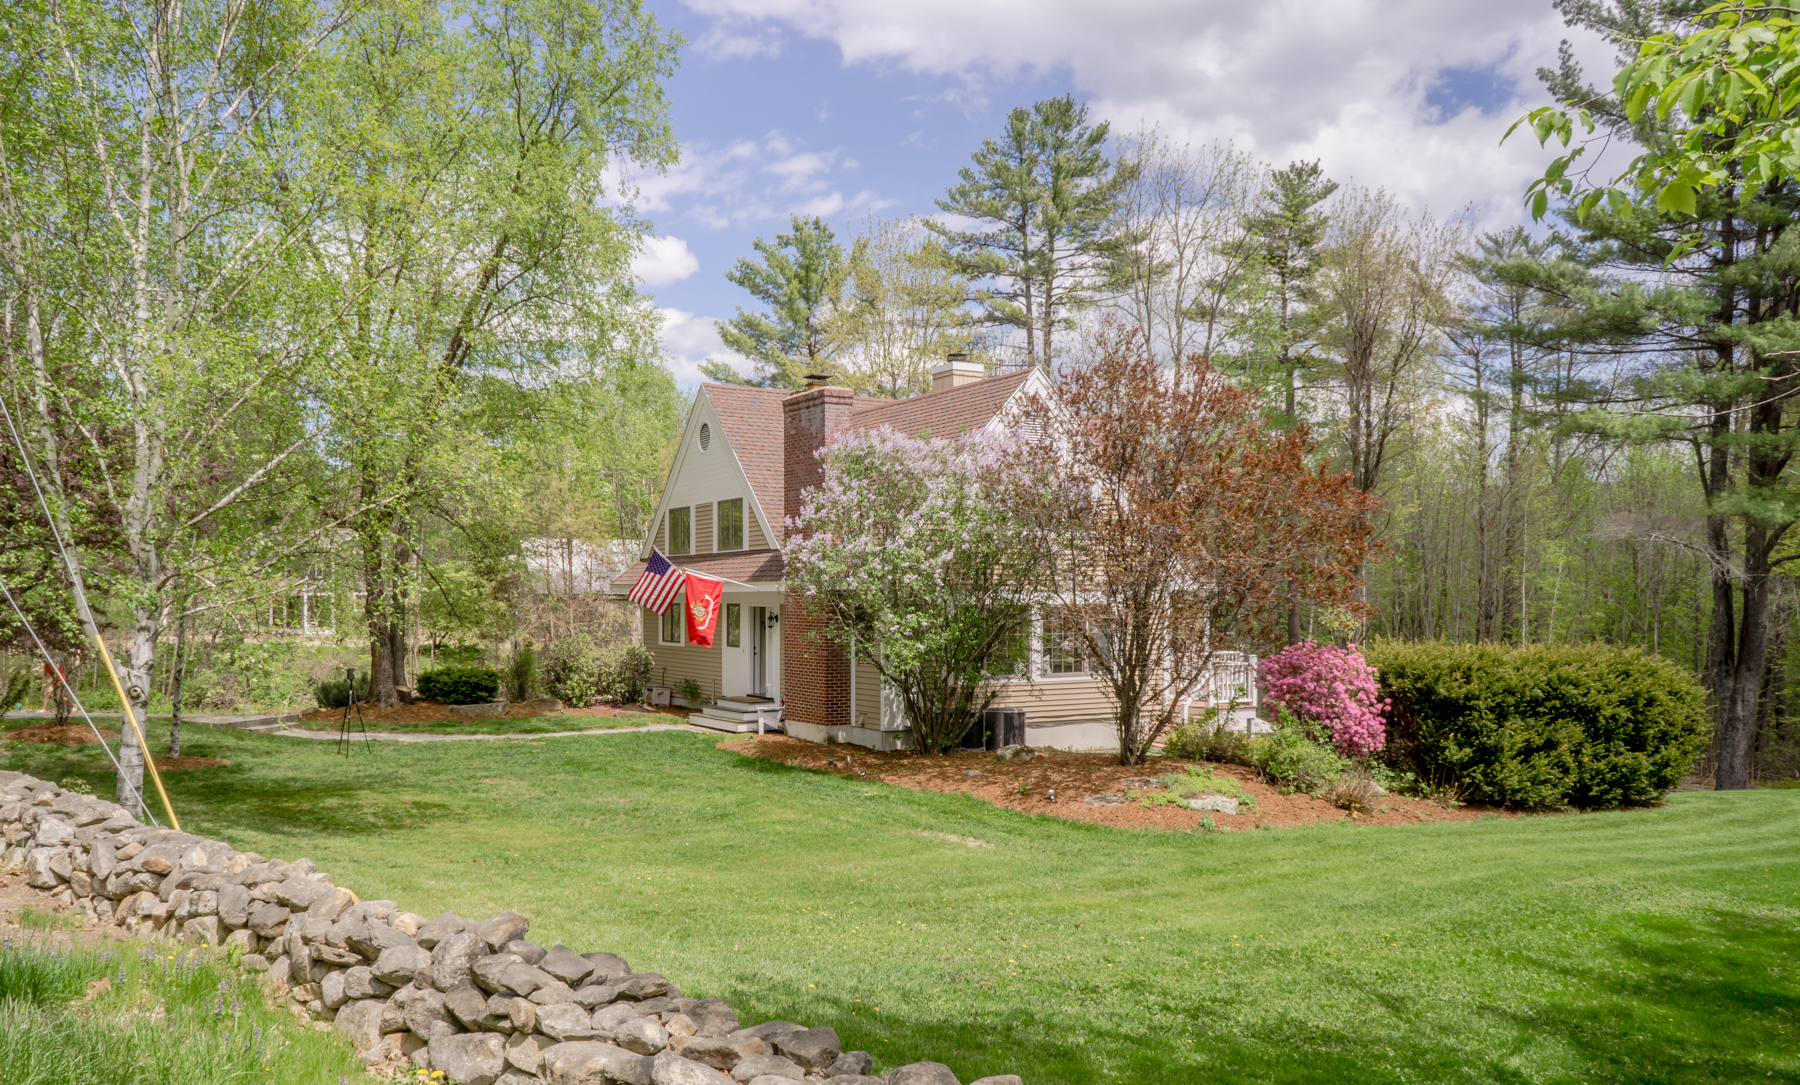 Single Family Home for Sale at French Inspired Garden Cape in Gilford 25 Gunstock Hill Rd Gilford, New Hampshire 03249 United States